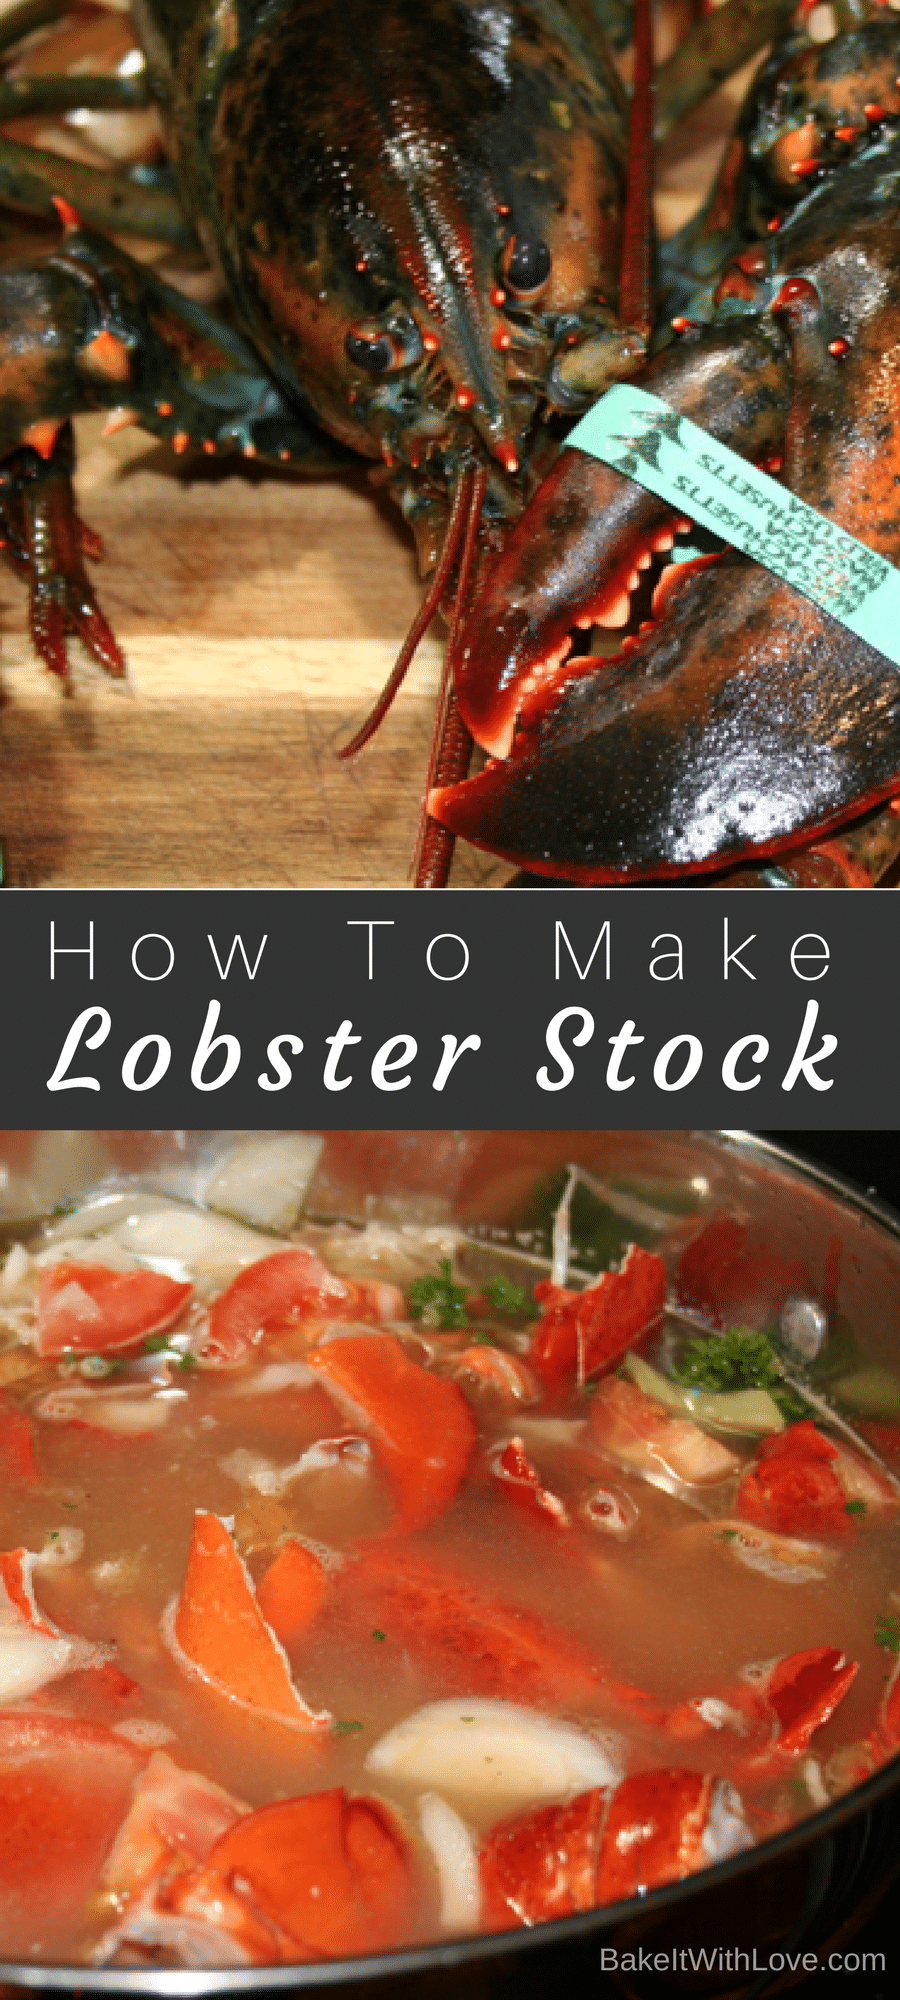 How To Make Lobster Stock